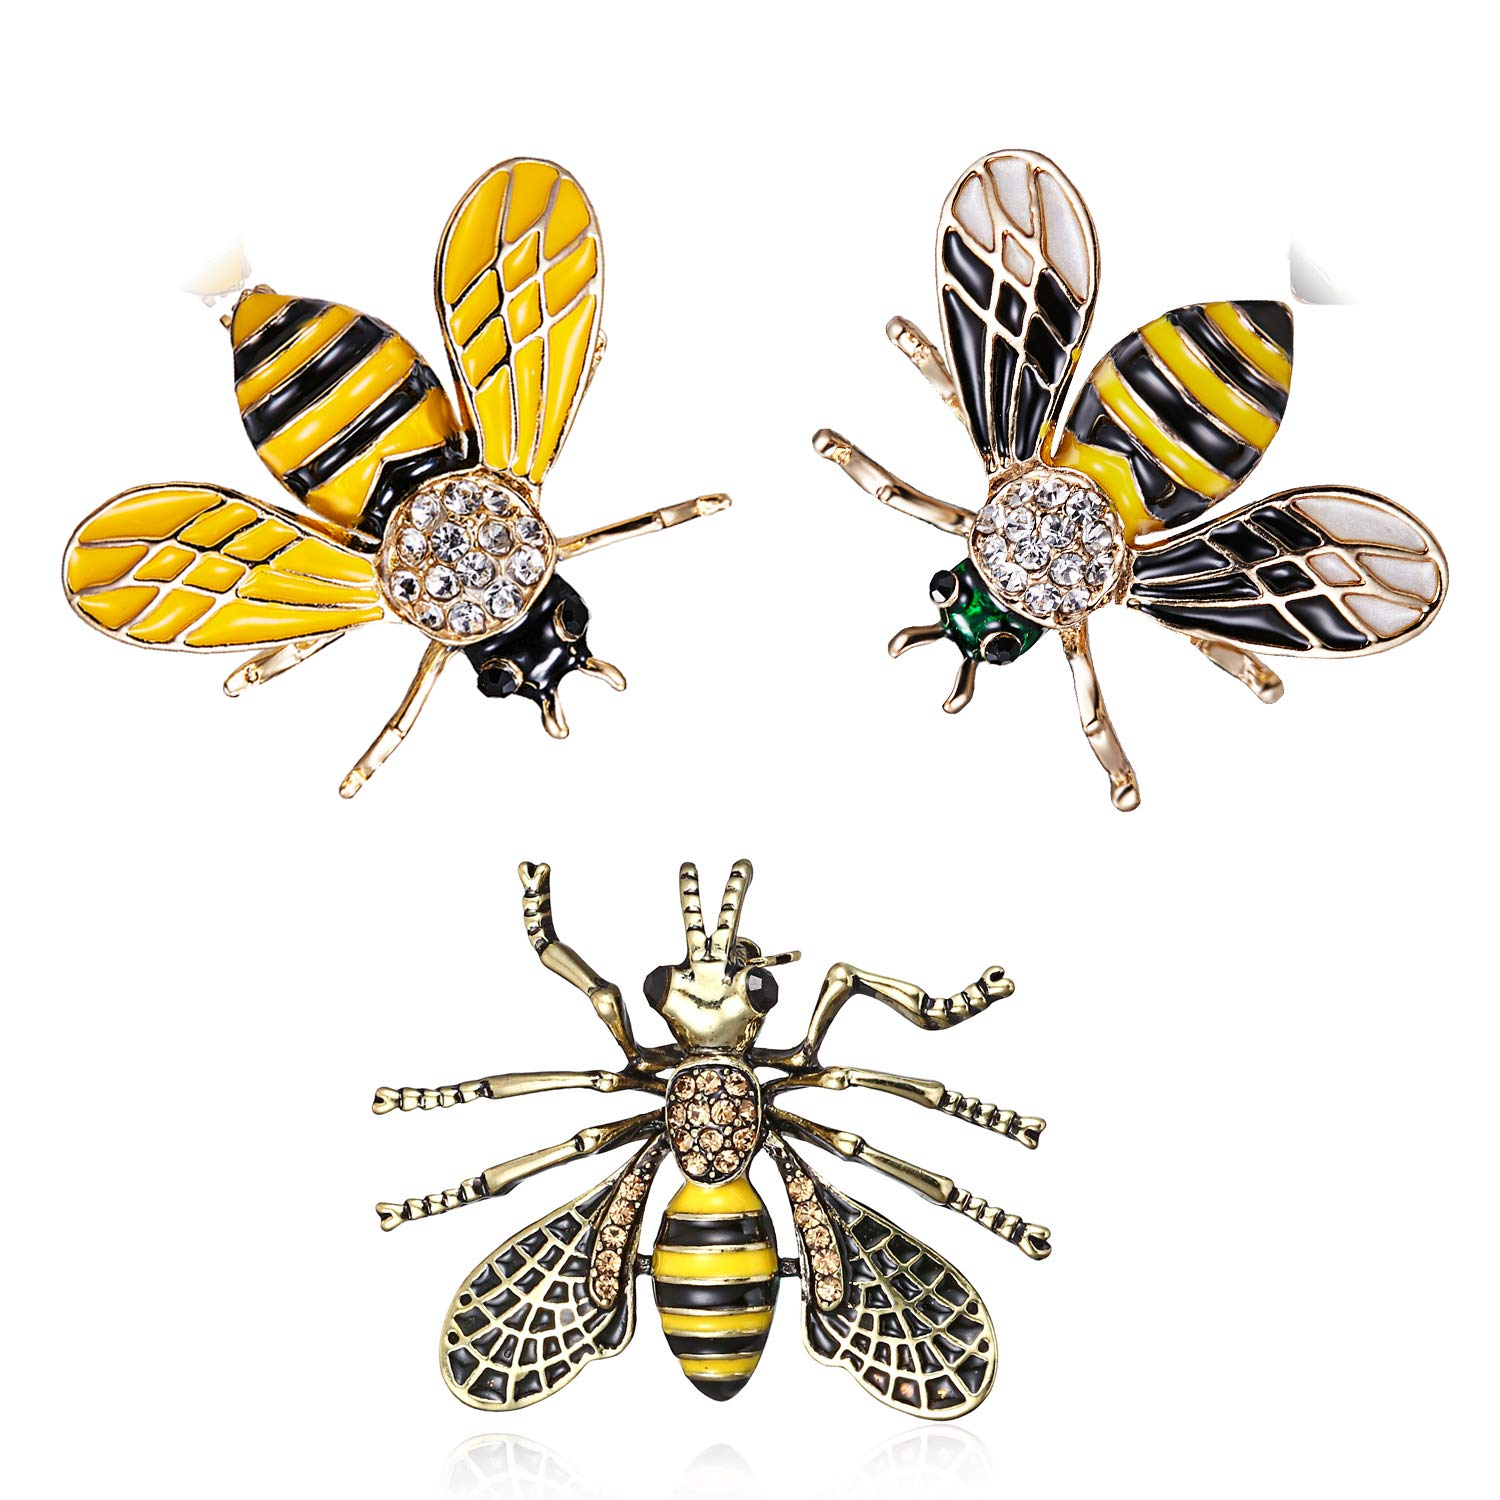 3Pcs Cute Honeybee Enamel Brooches Pin Antique Crystal Rhinestones Bee Scarf Clips for Women Girls (Style2)